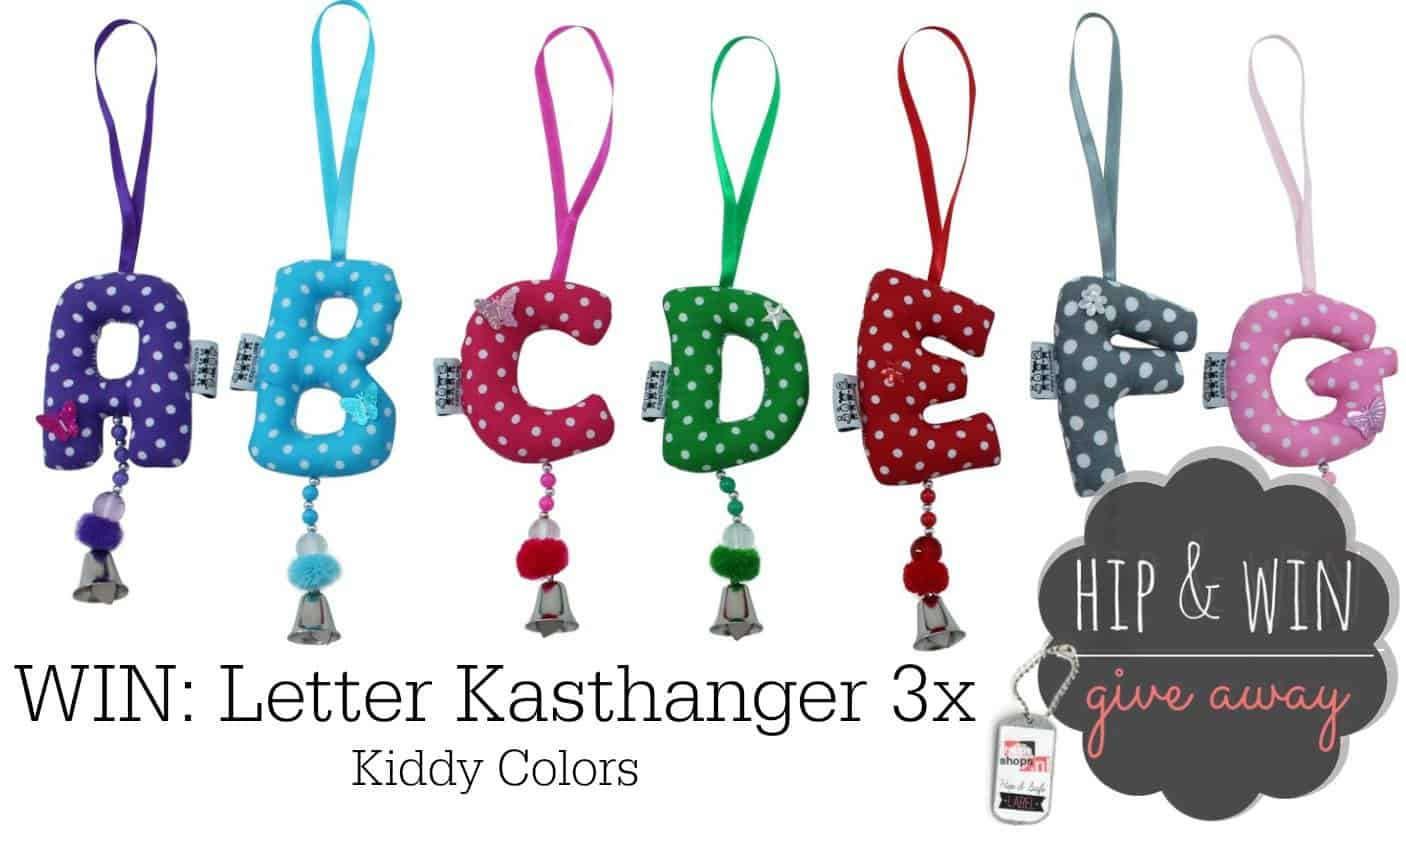 kiddycolors-hippeshops-giveaway